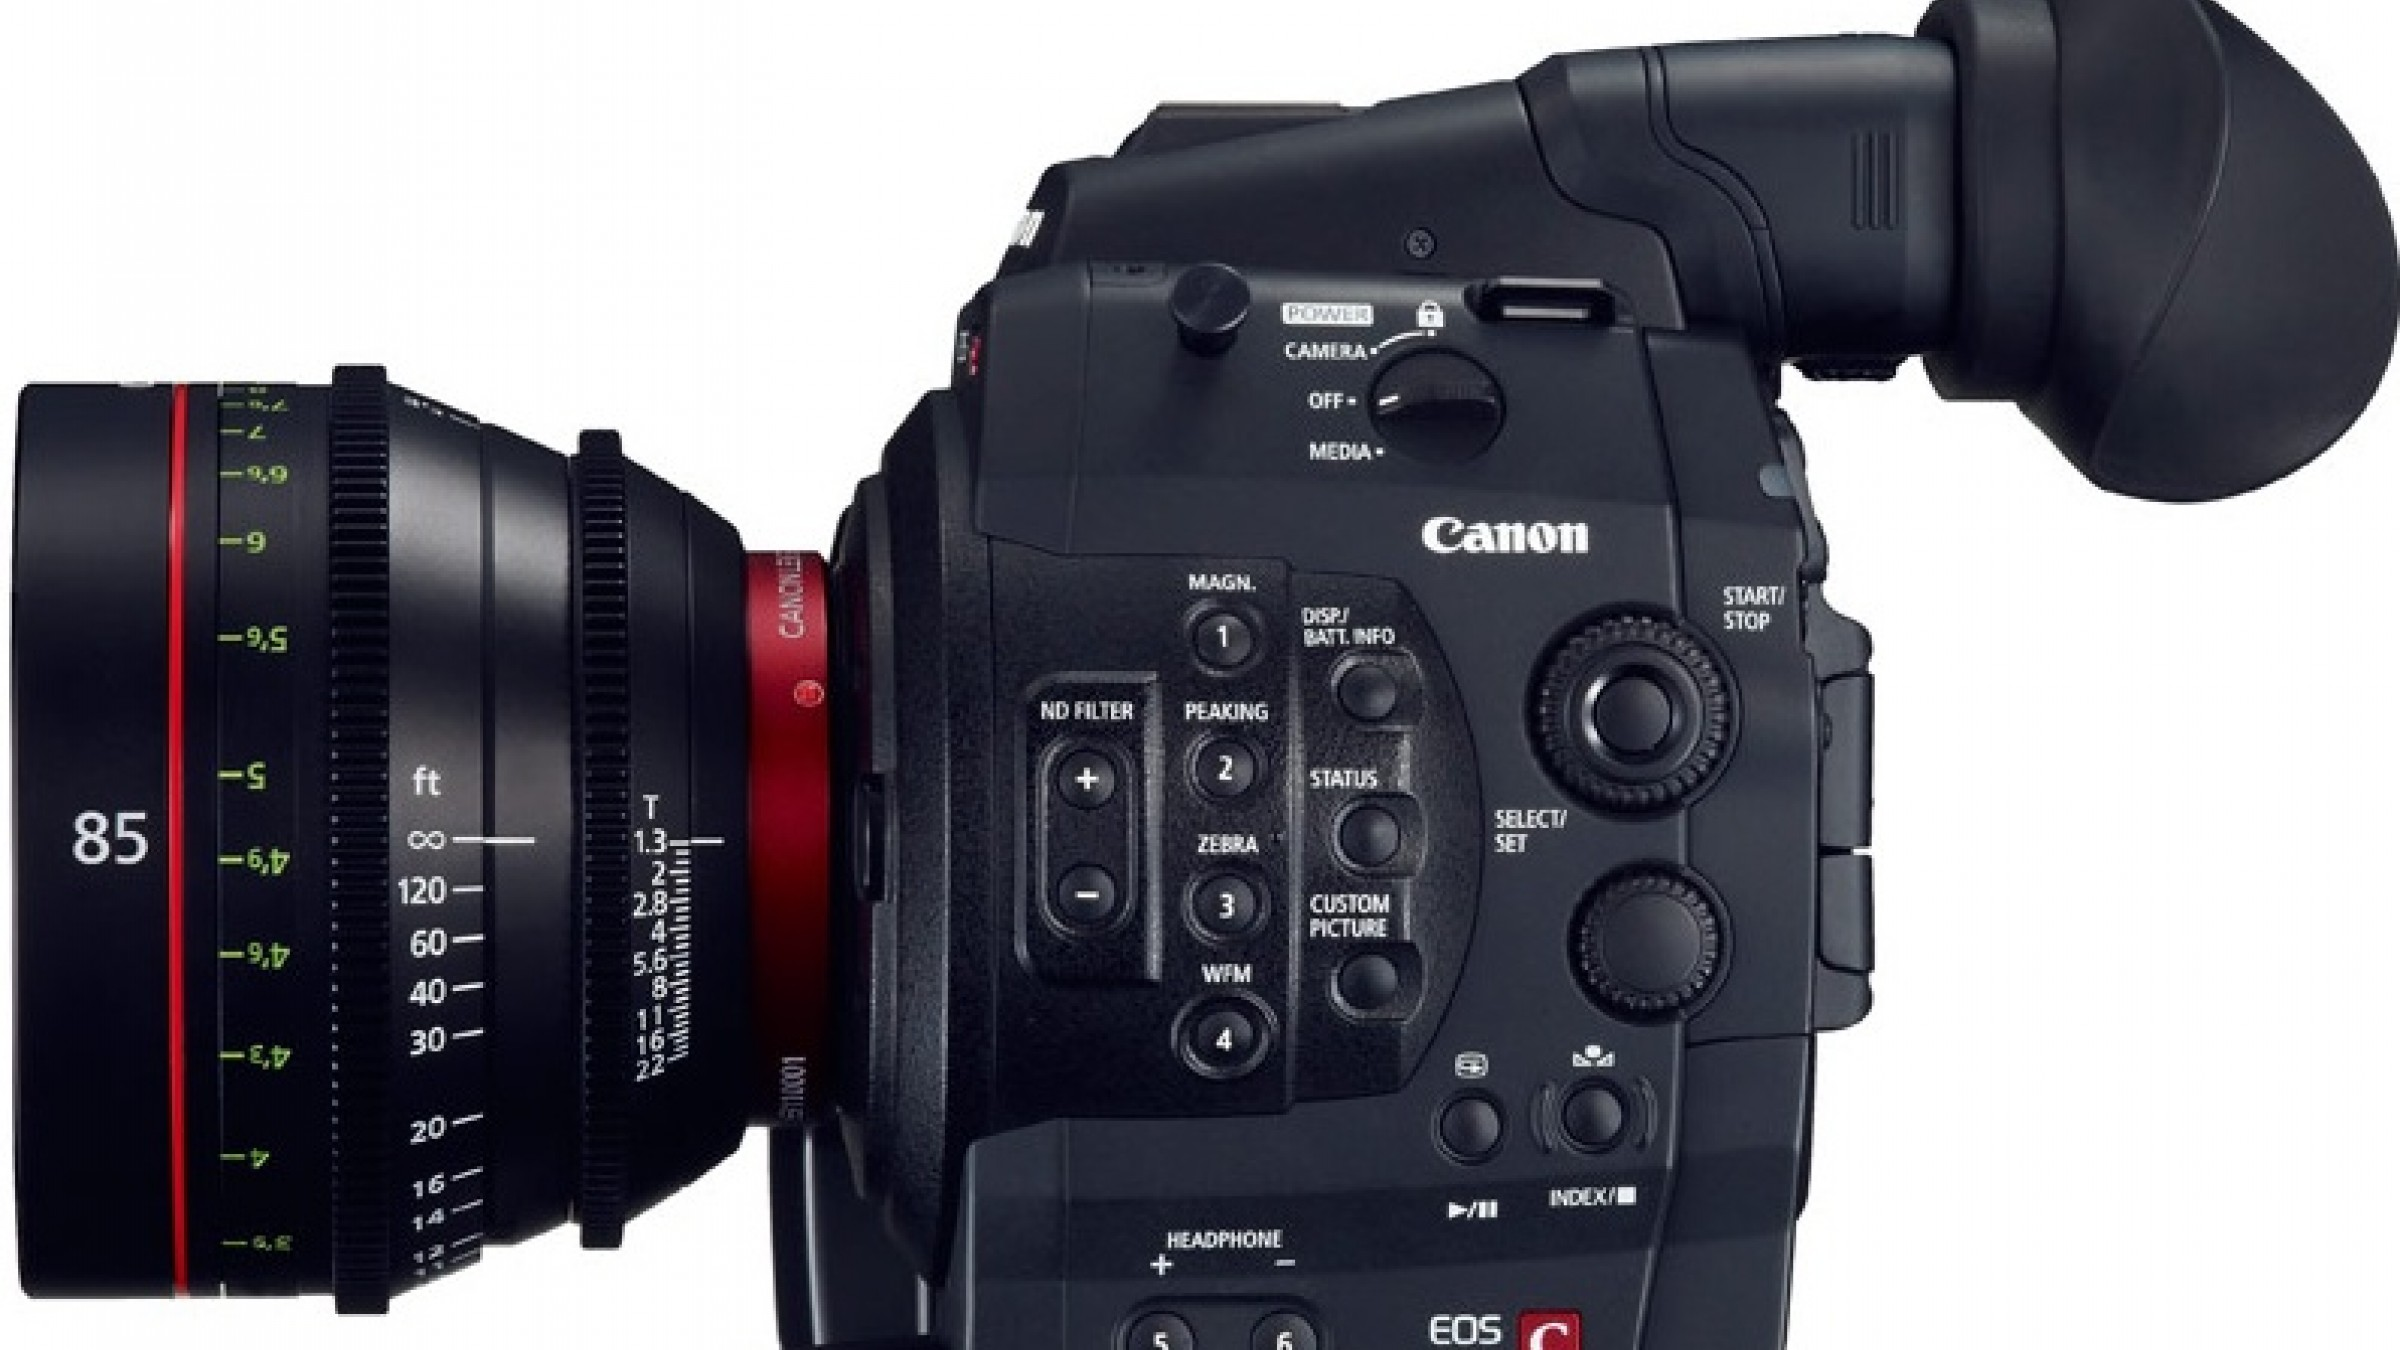 If You Want a Canon C100 or C500, They've Never Been Cheaper